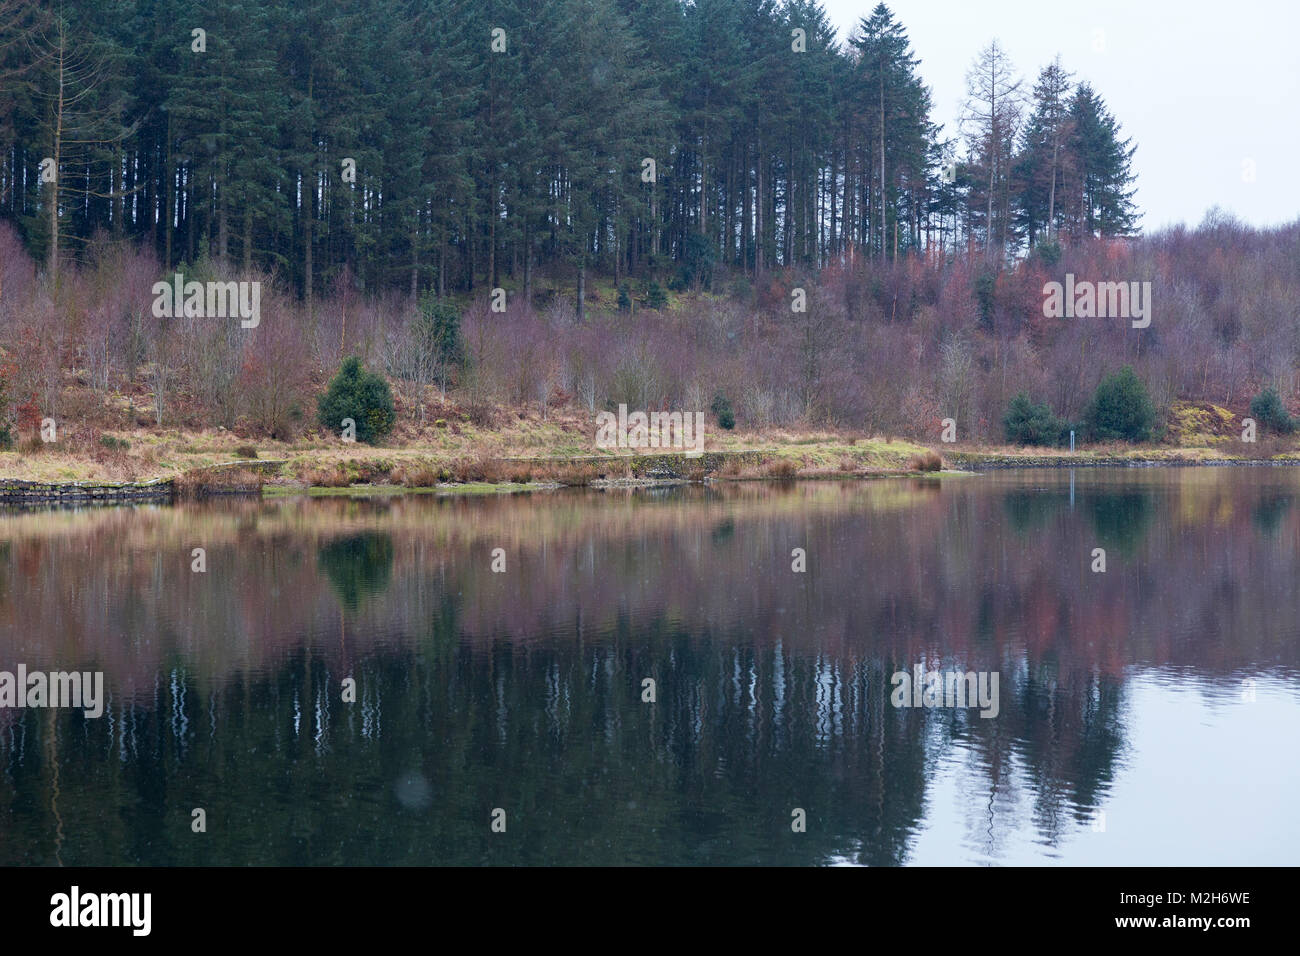 Ridgegate Reservoir in Macclesfield Forest on A Dank February Day - Stock Image